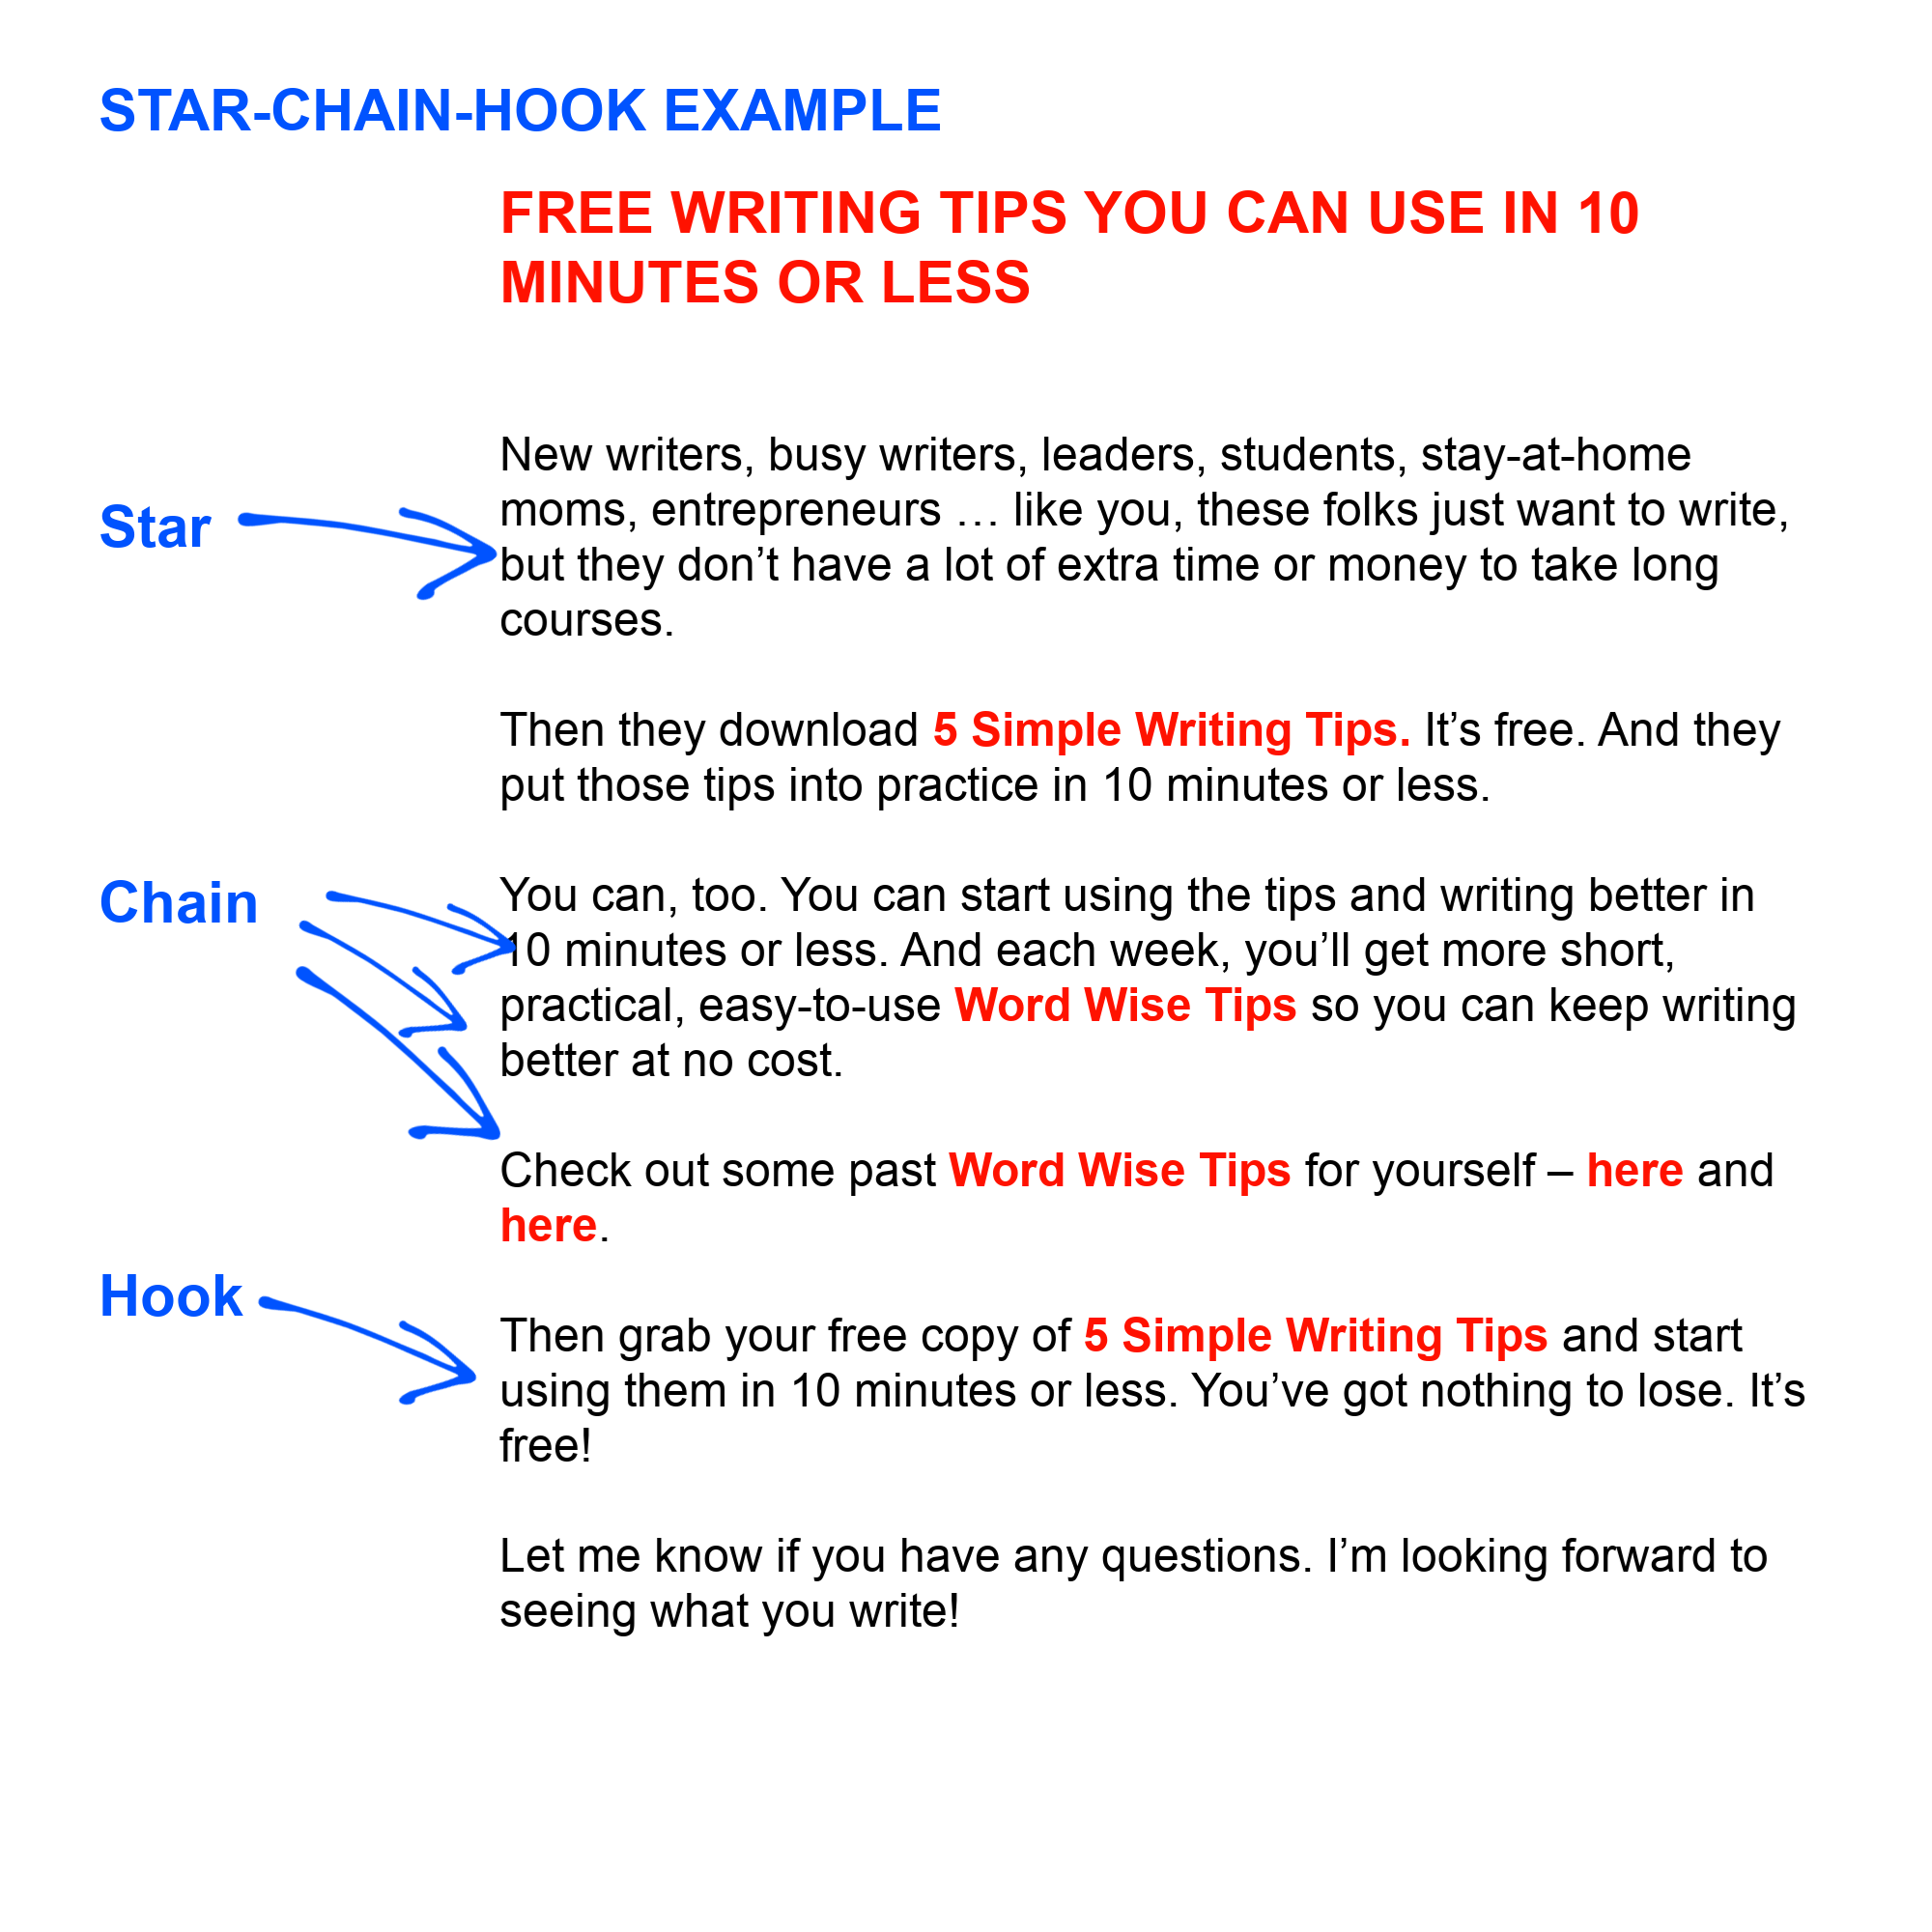 Example of Star-Chain-Hook content writing formula with Word Wise at Nonprofit Copywriter #FreelanceWriting #Copywriting #WritingTips